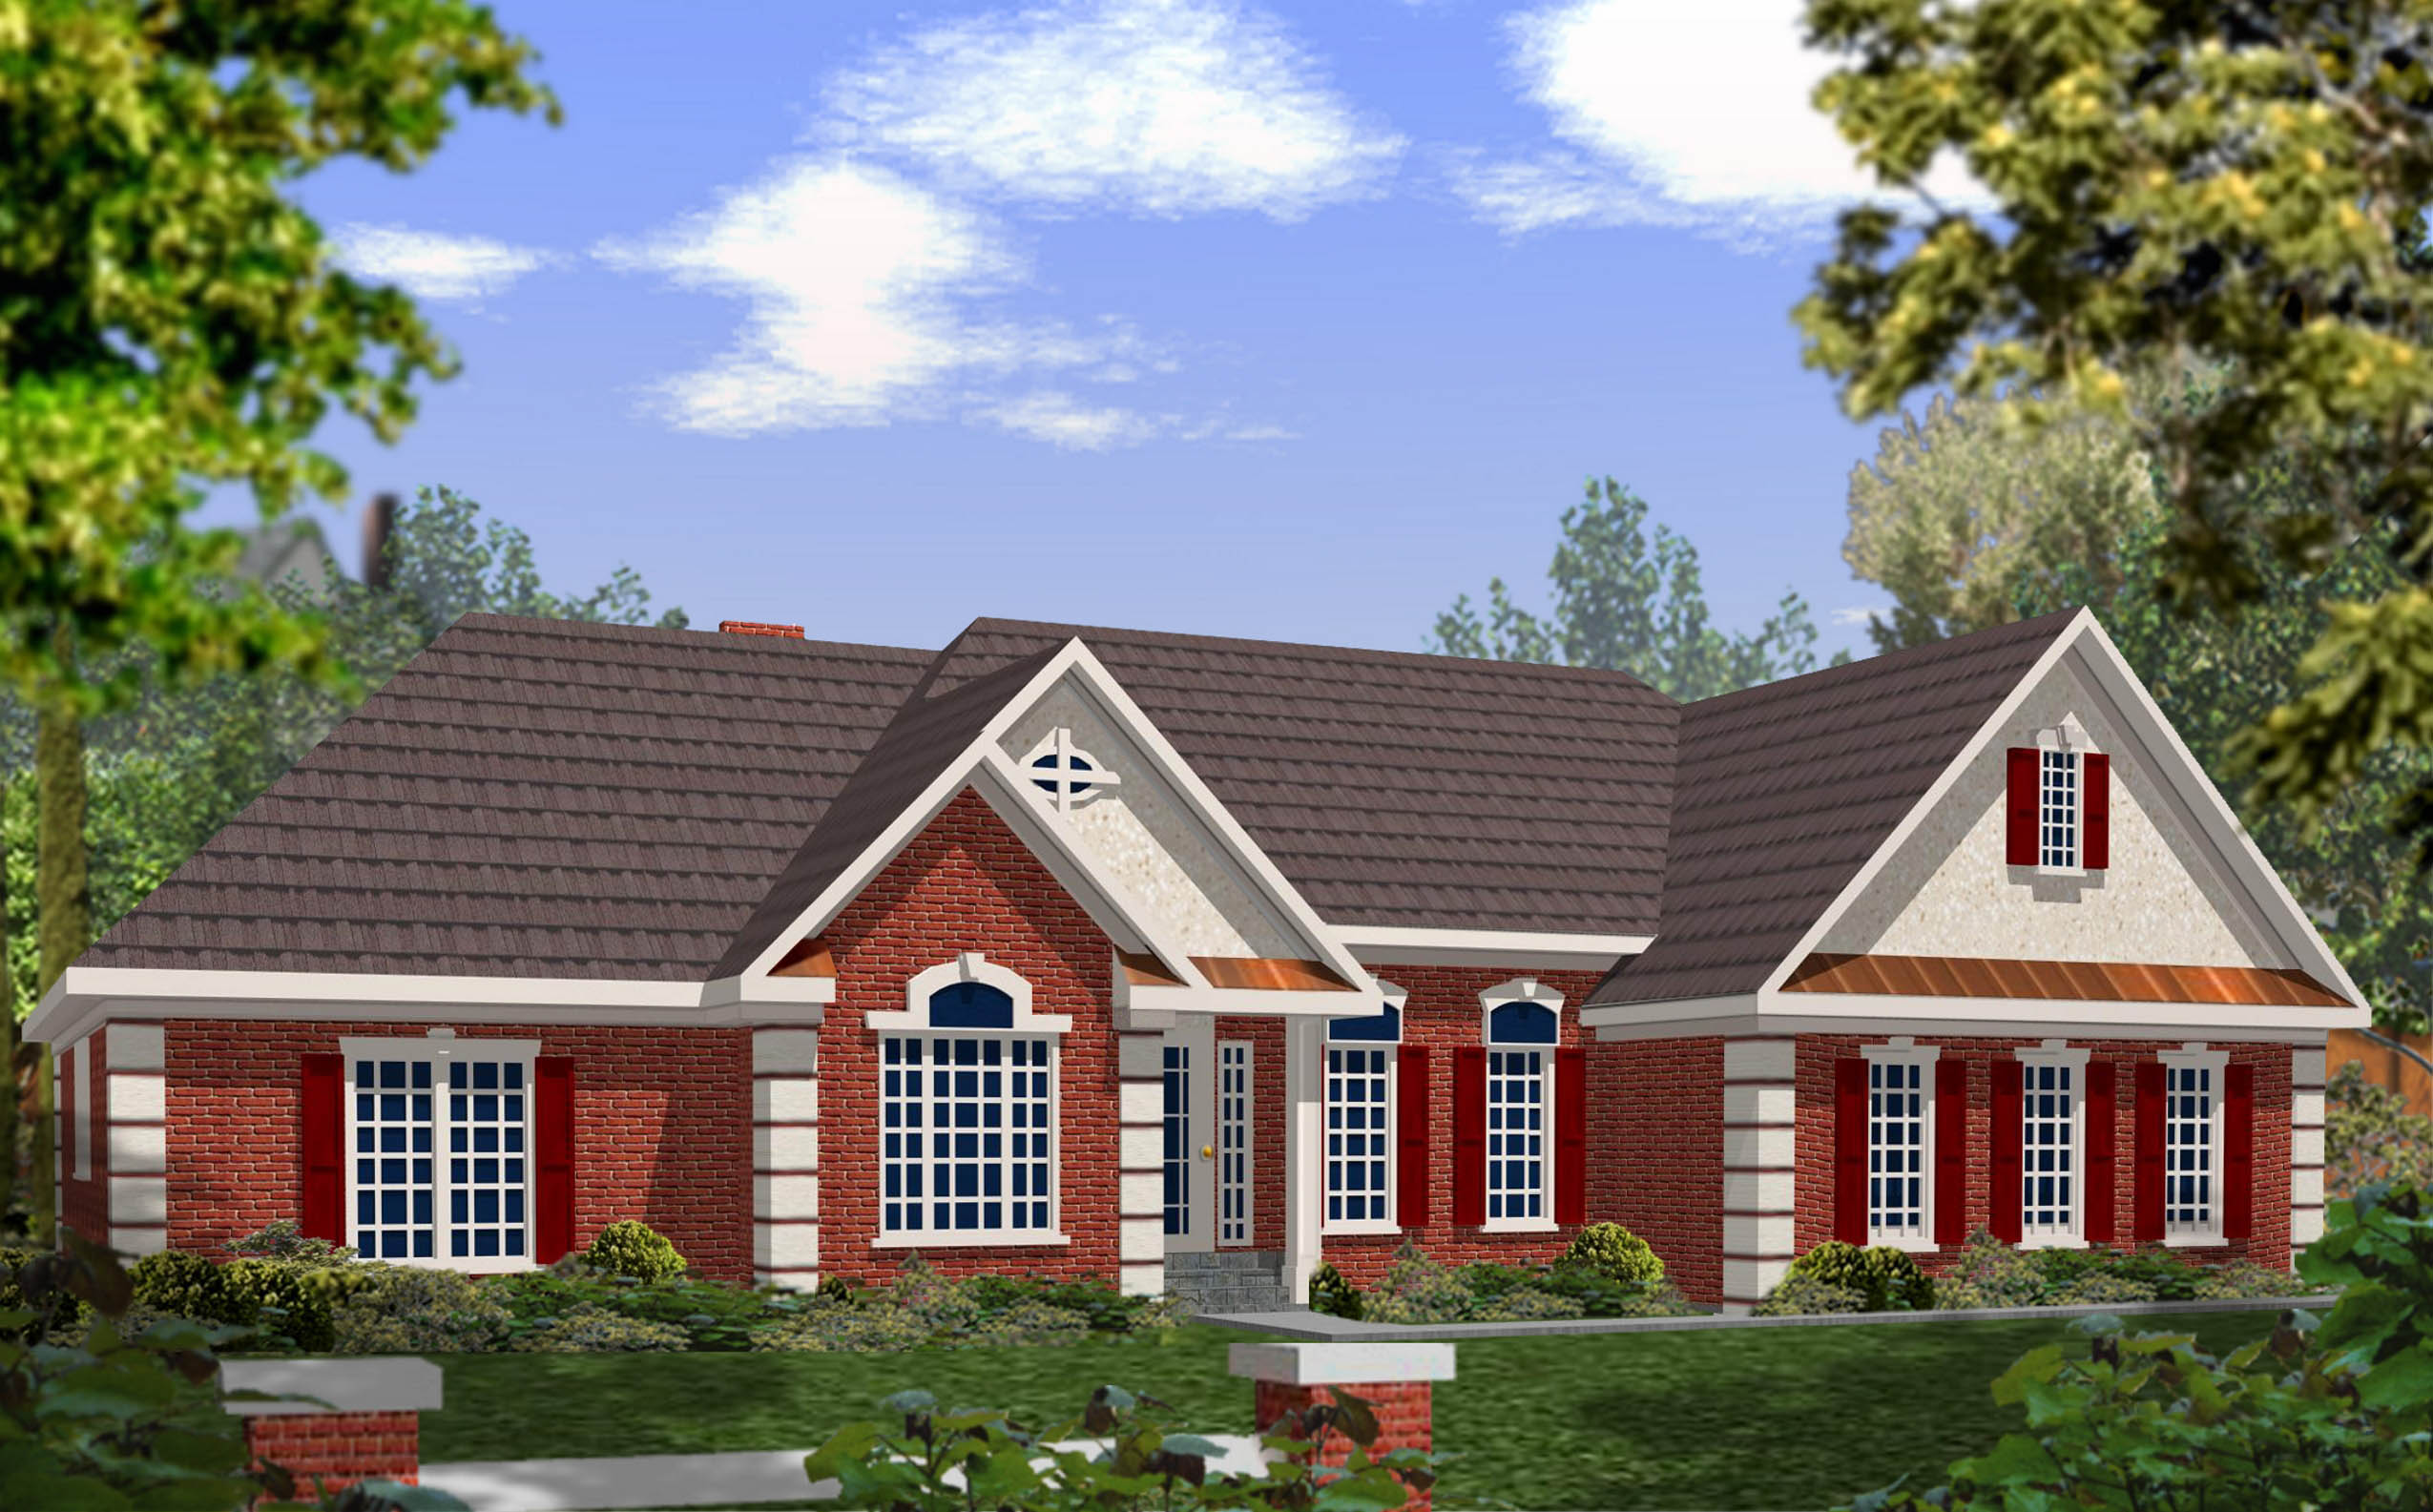 Brick and Stucco Ranch Style House